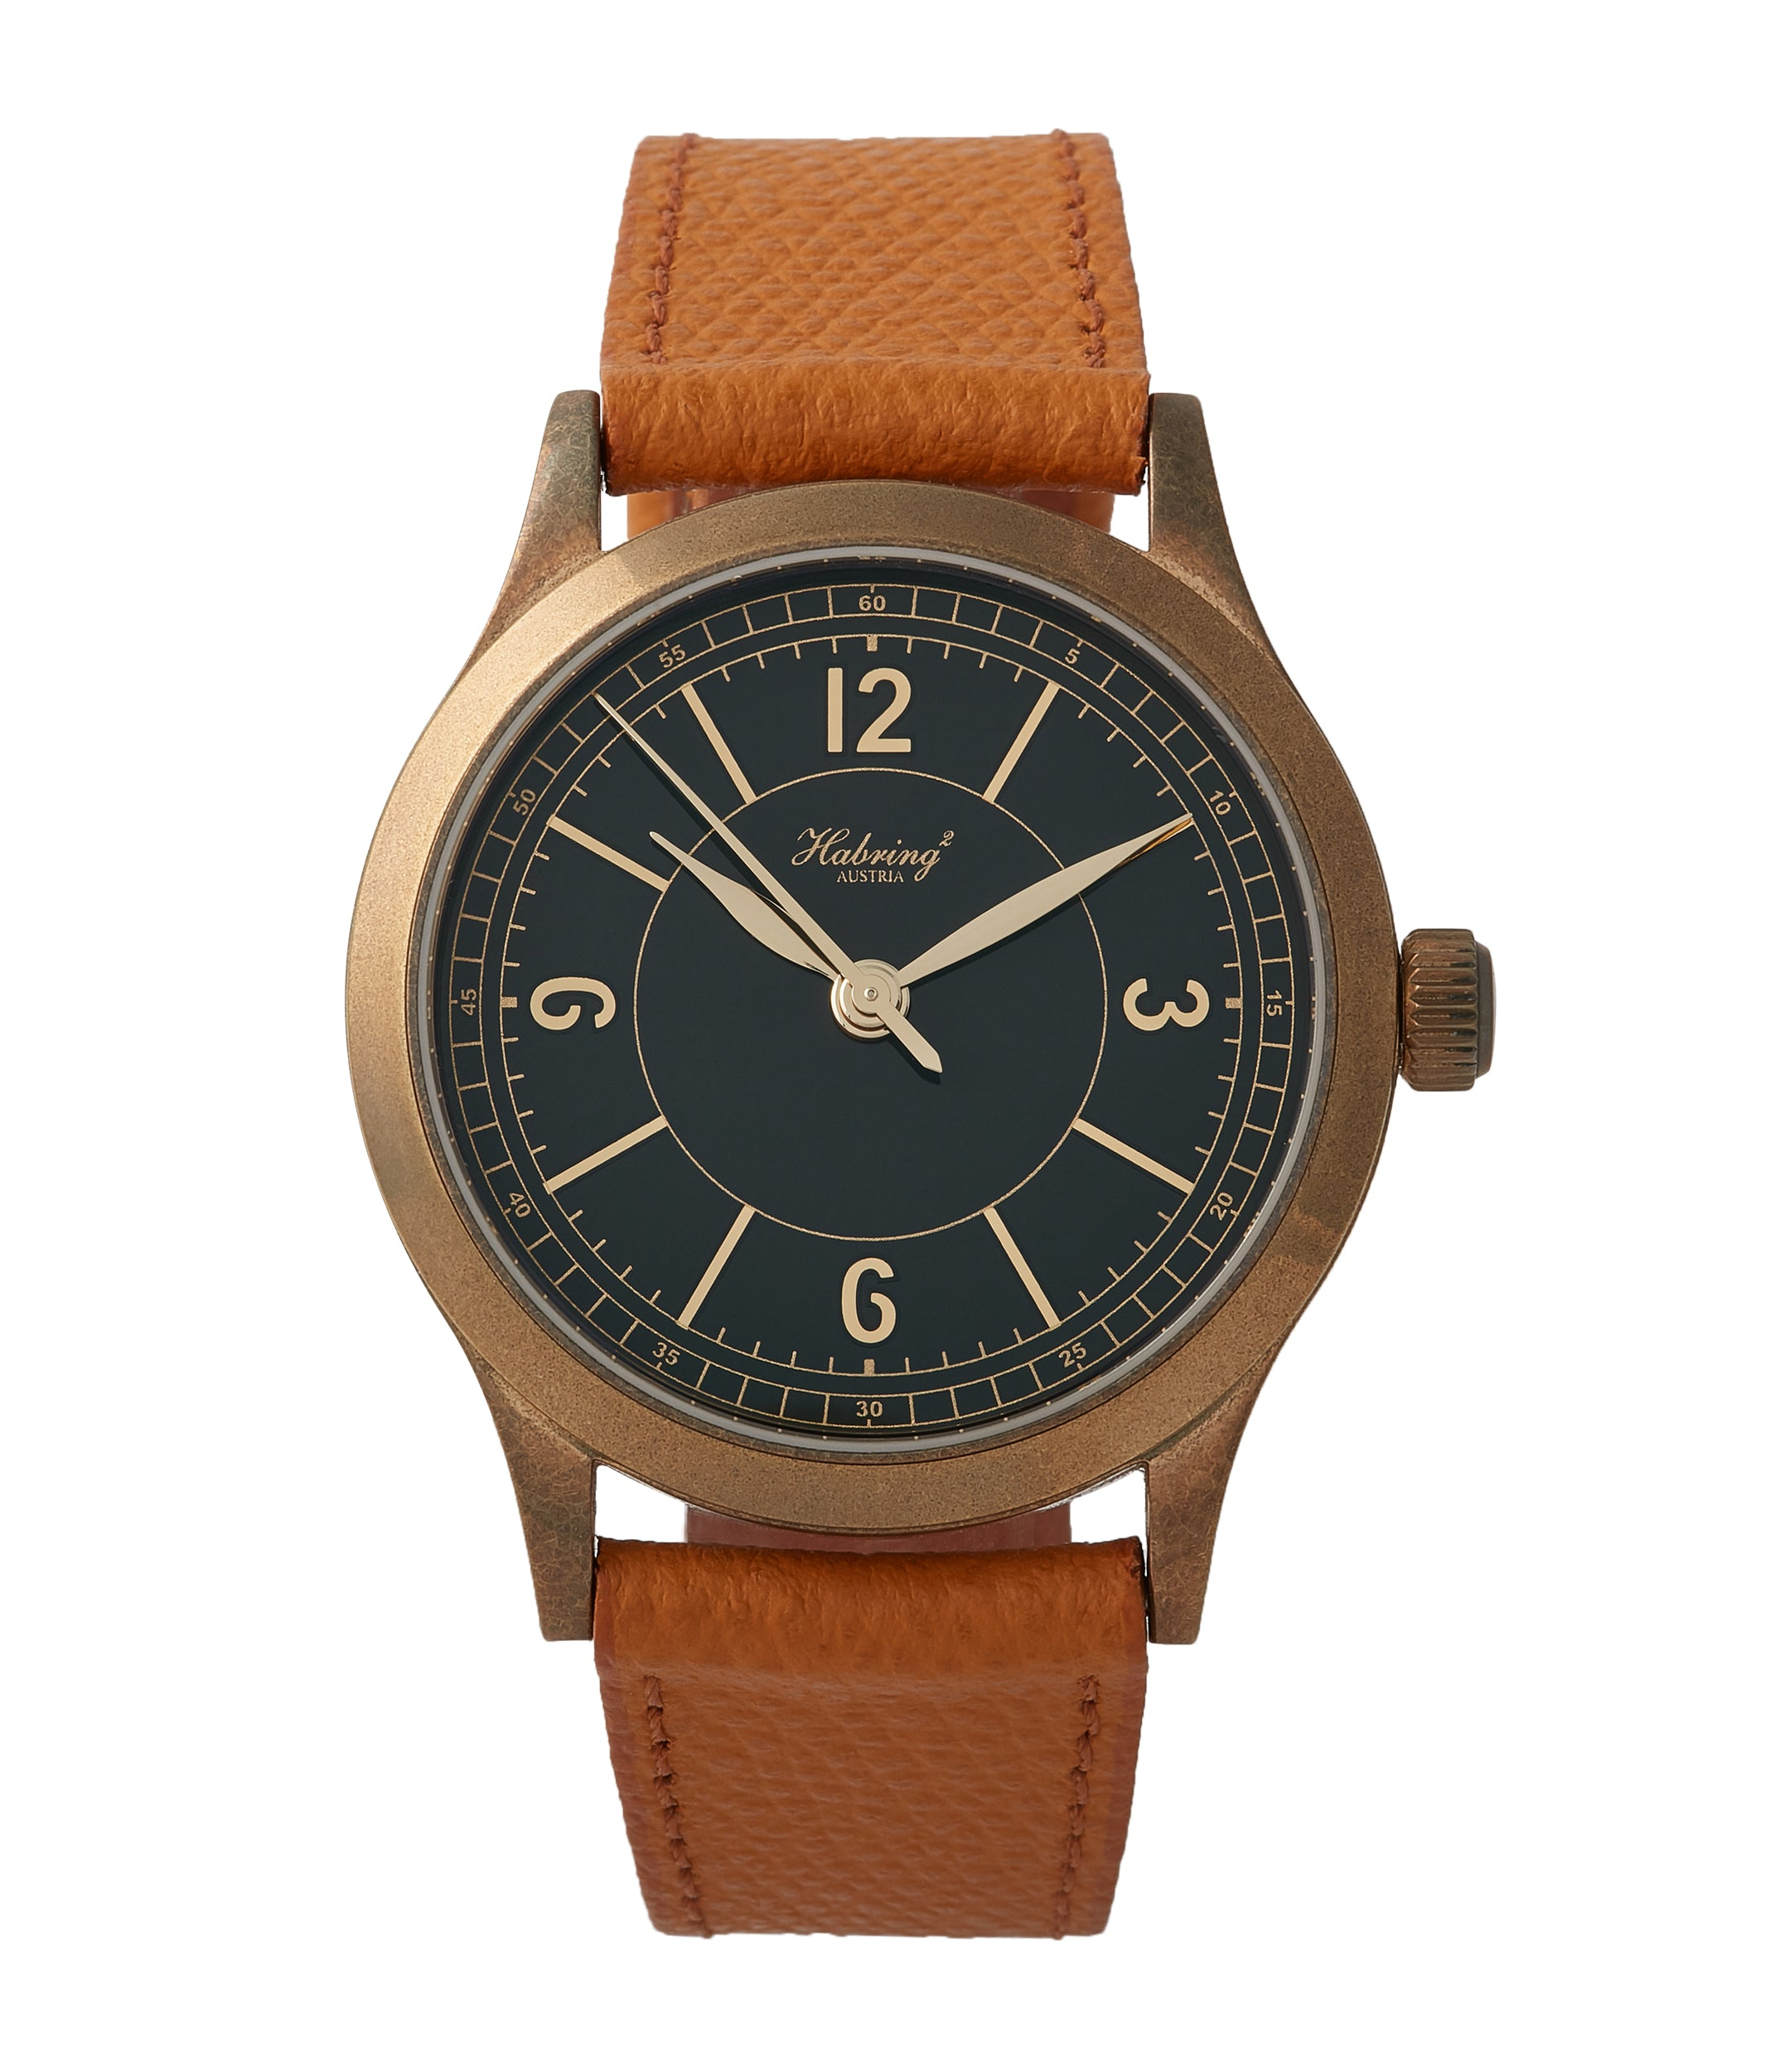 buy Habring2 Erwin LAB 01 Massena LAB Limited Edition bronze independent watchmaker dress watch for sale online at A Collected Man London UK rare watches